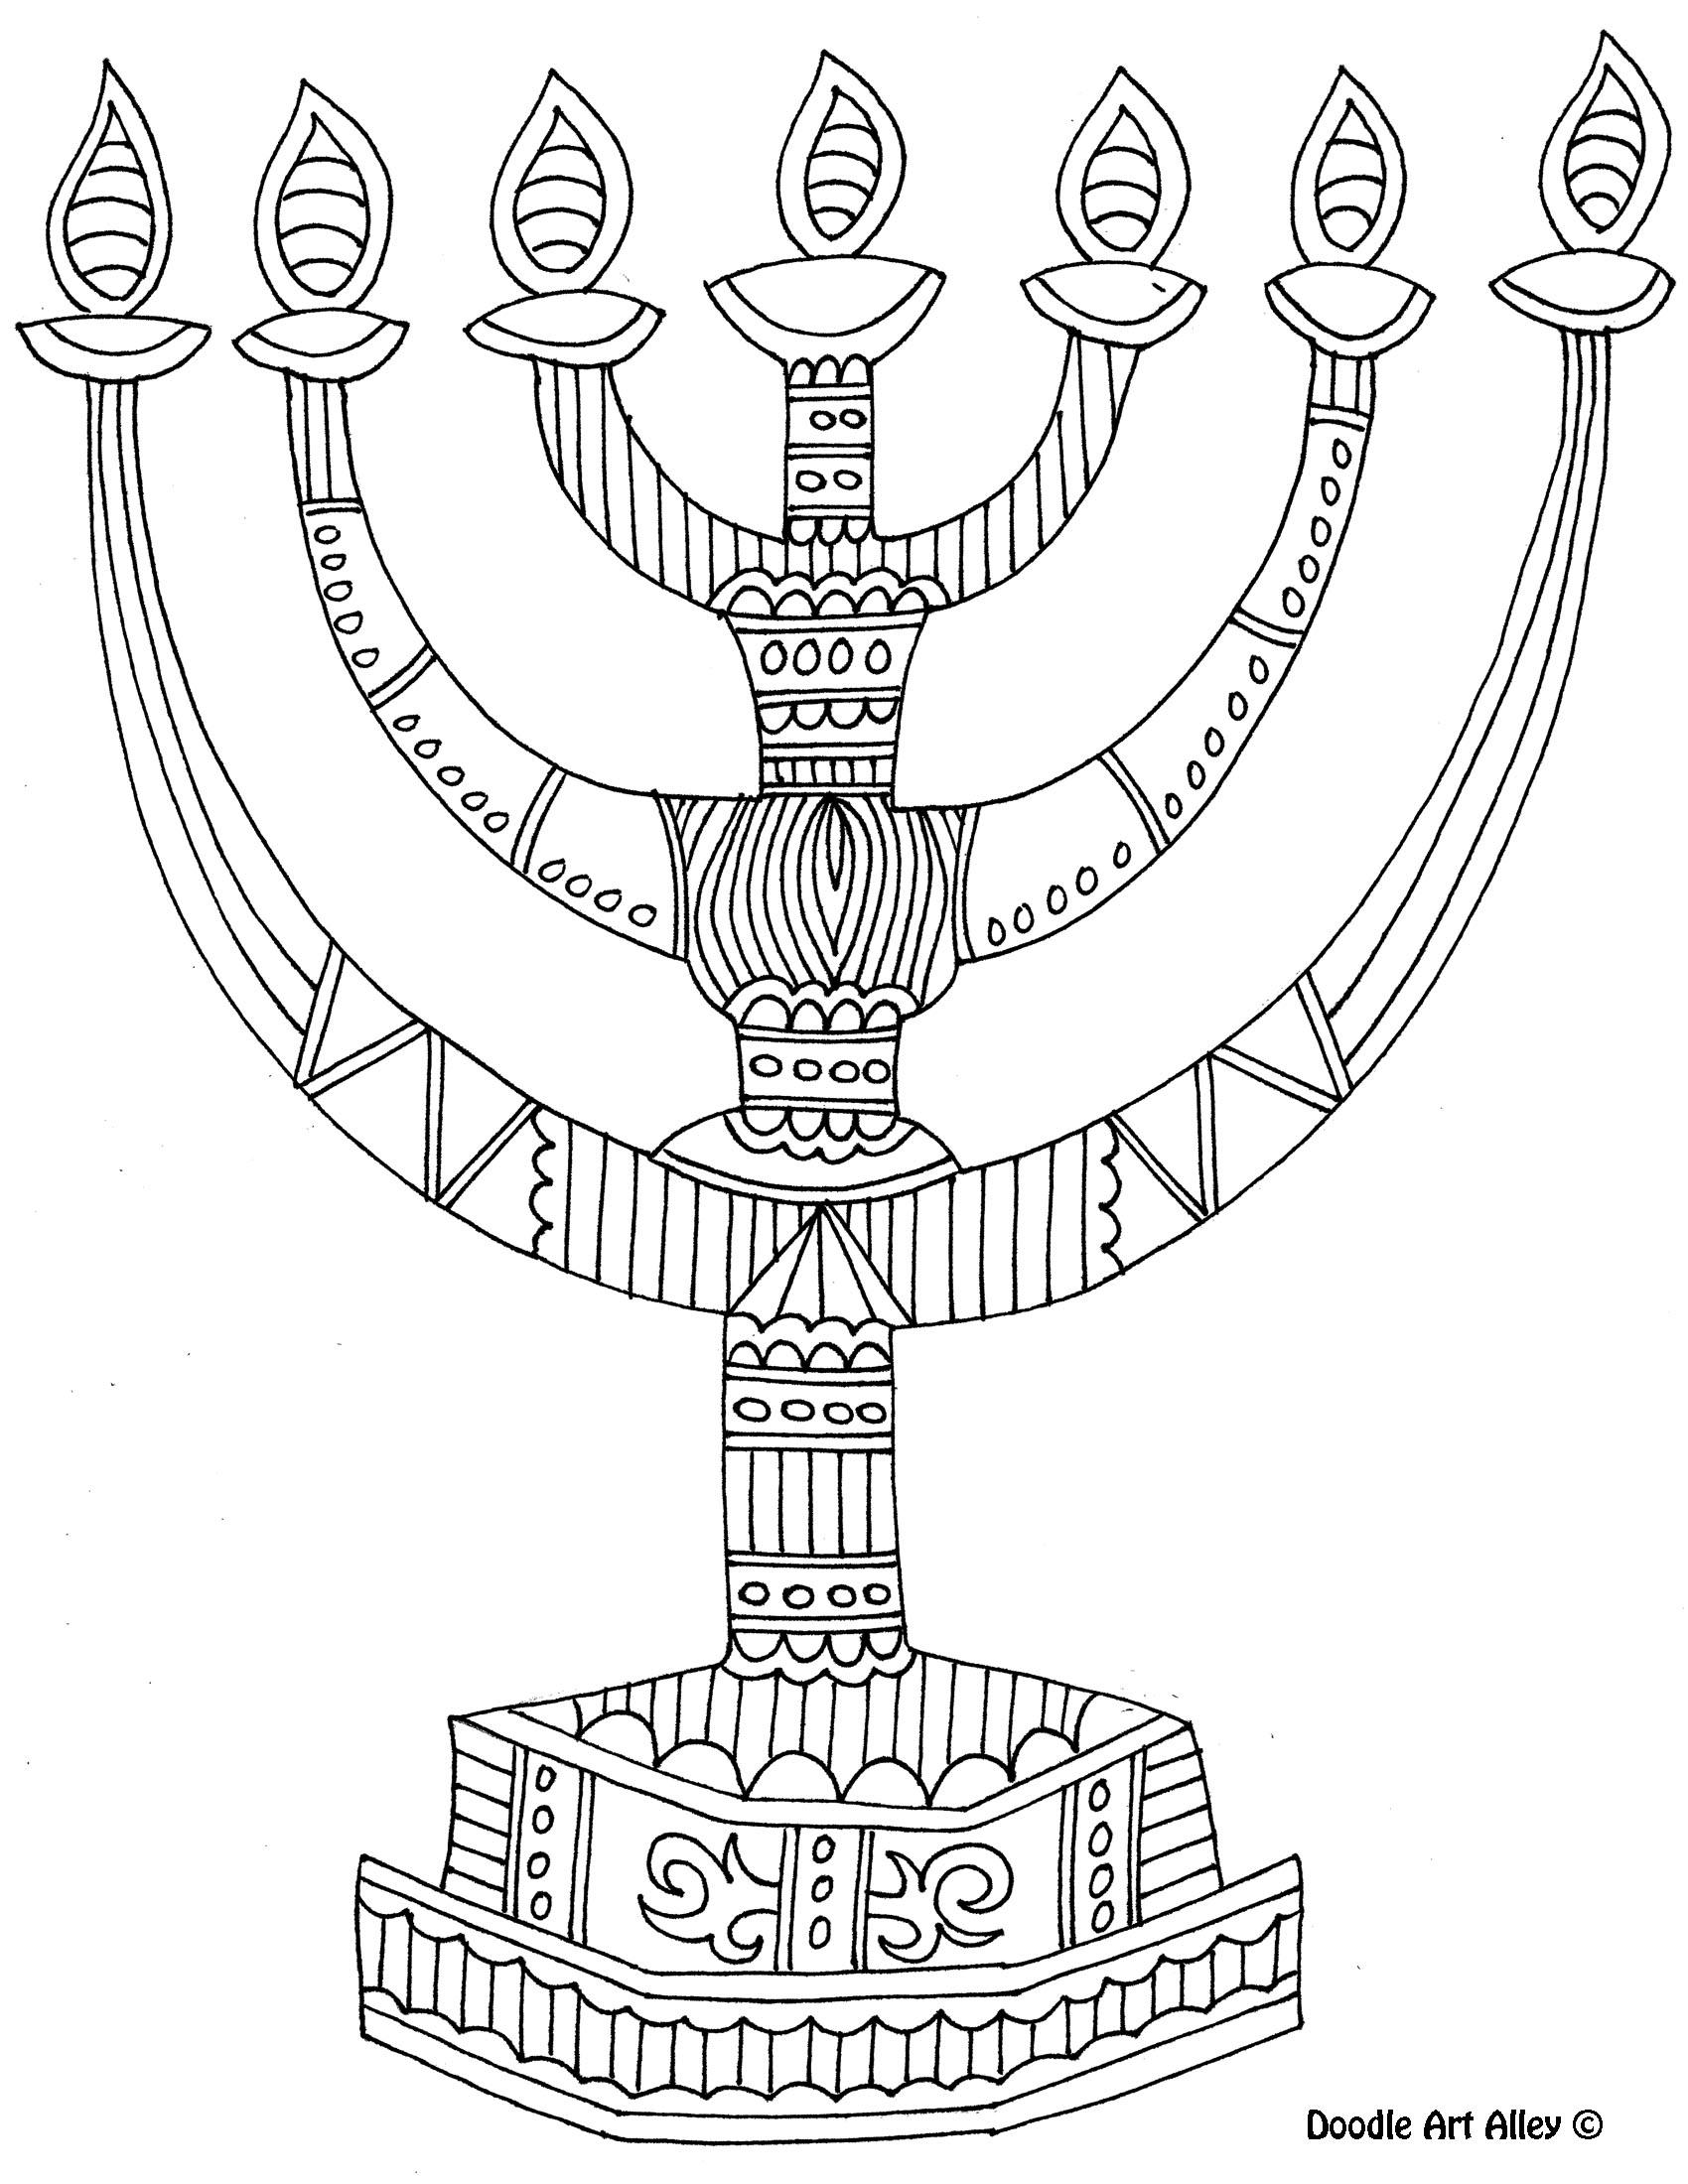 hanukkah coloring pages printable - photo#12